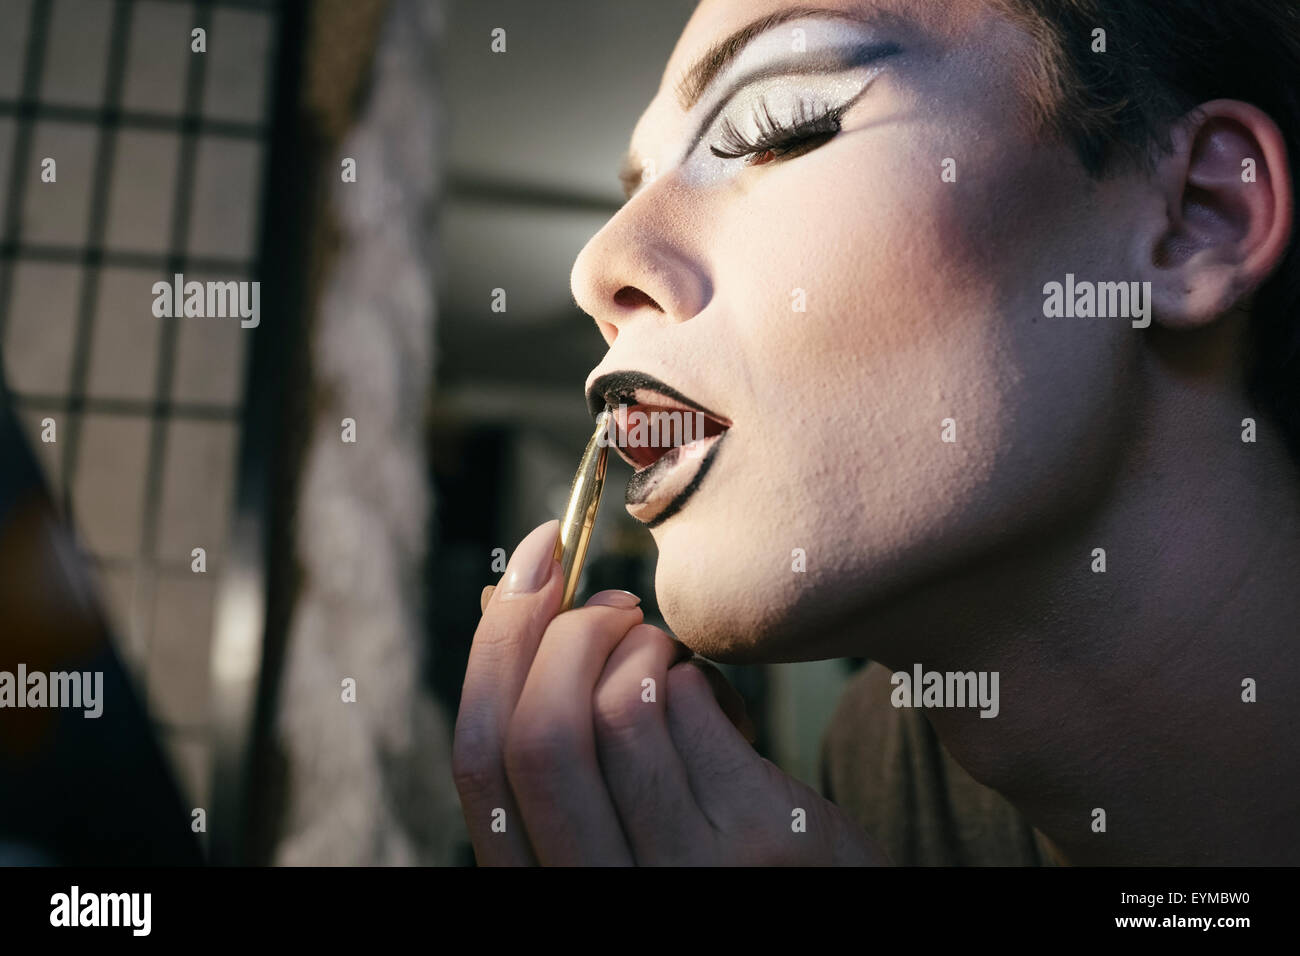 Male drag queen putting on make up and dressing up in preparation for a performance - Stock Image